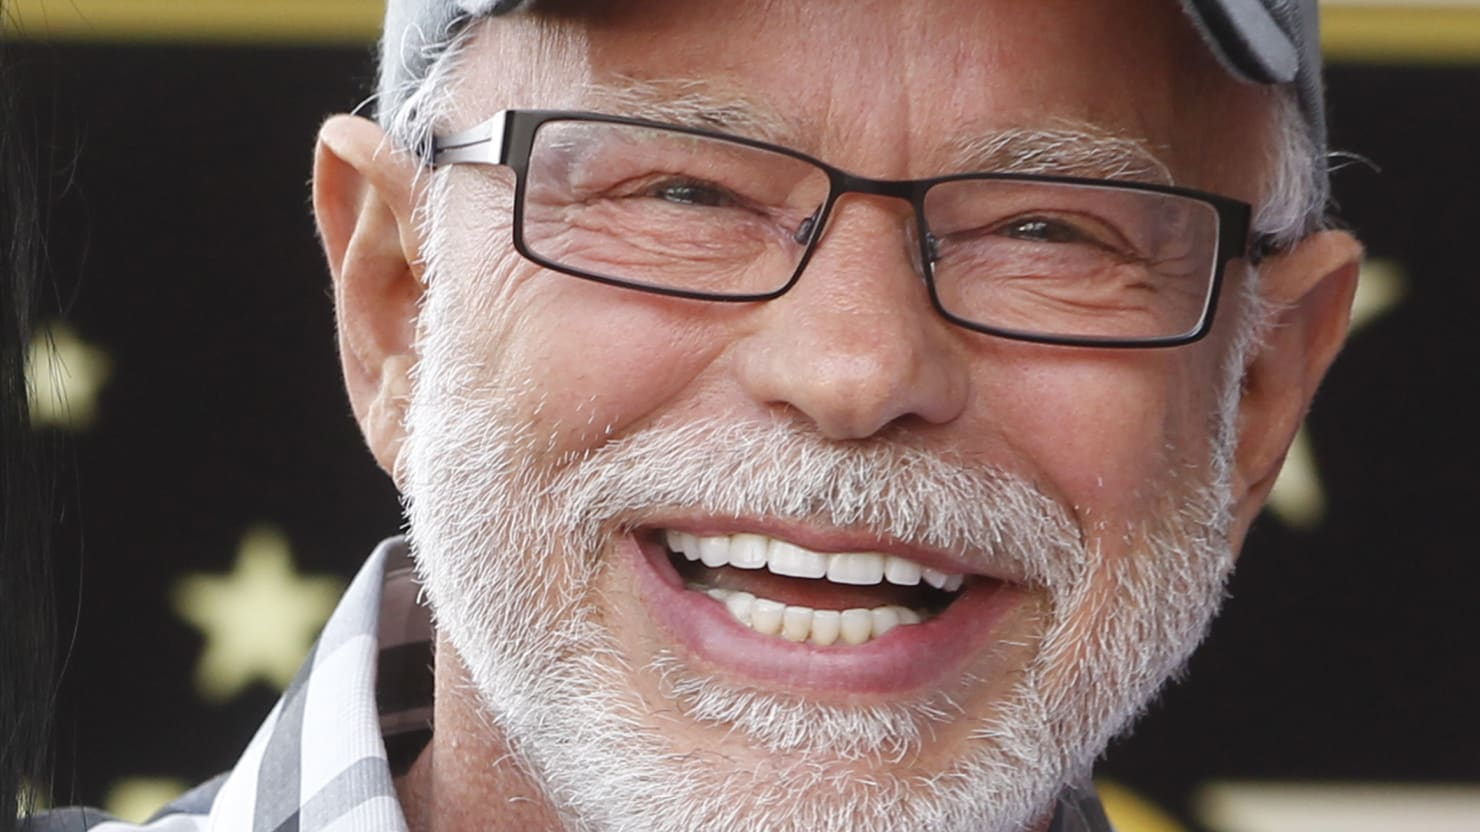 Jim Bakker Agrees to Pay $156,000 for Claiming Silver Solution Could Cure Coronavirus